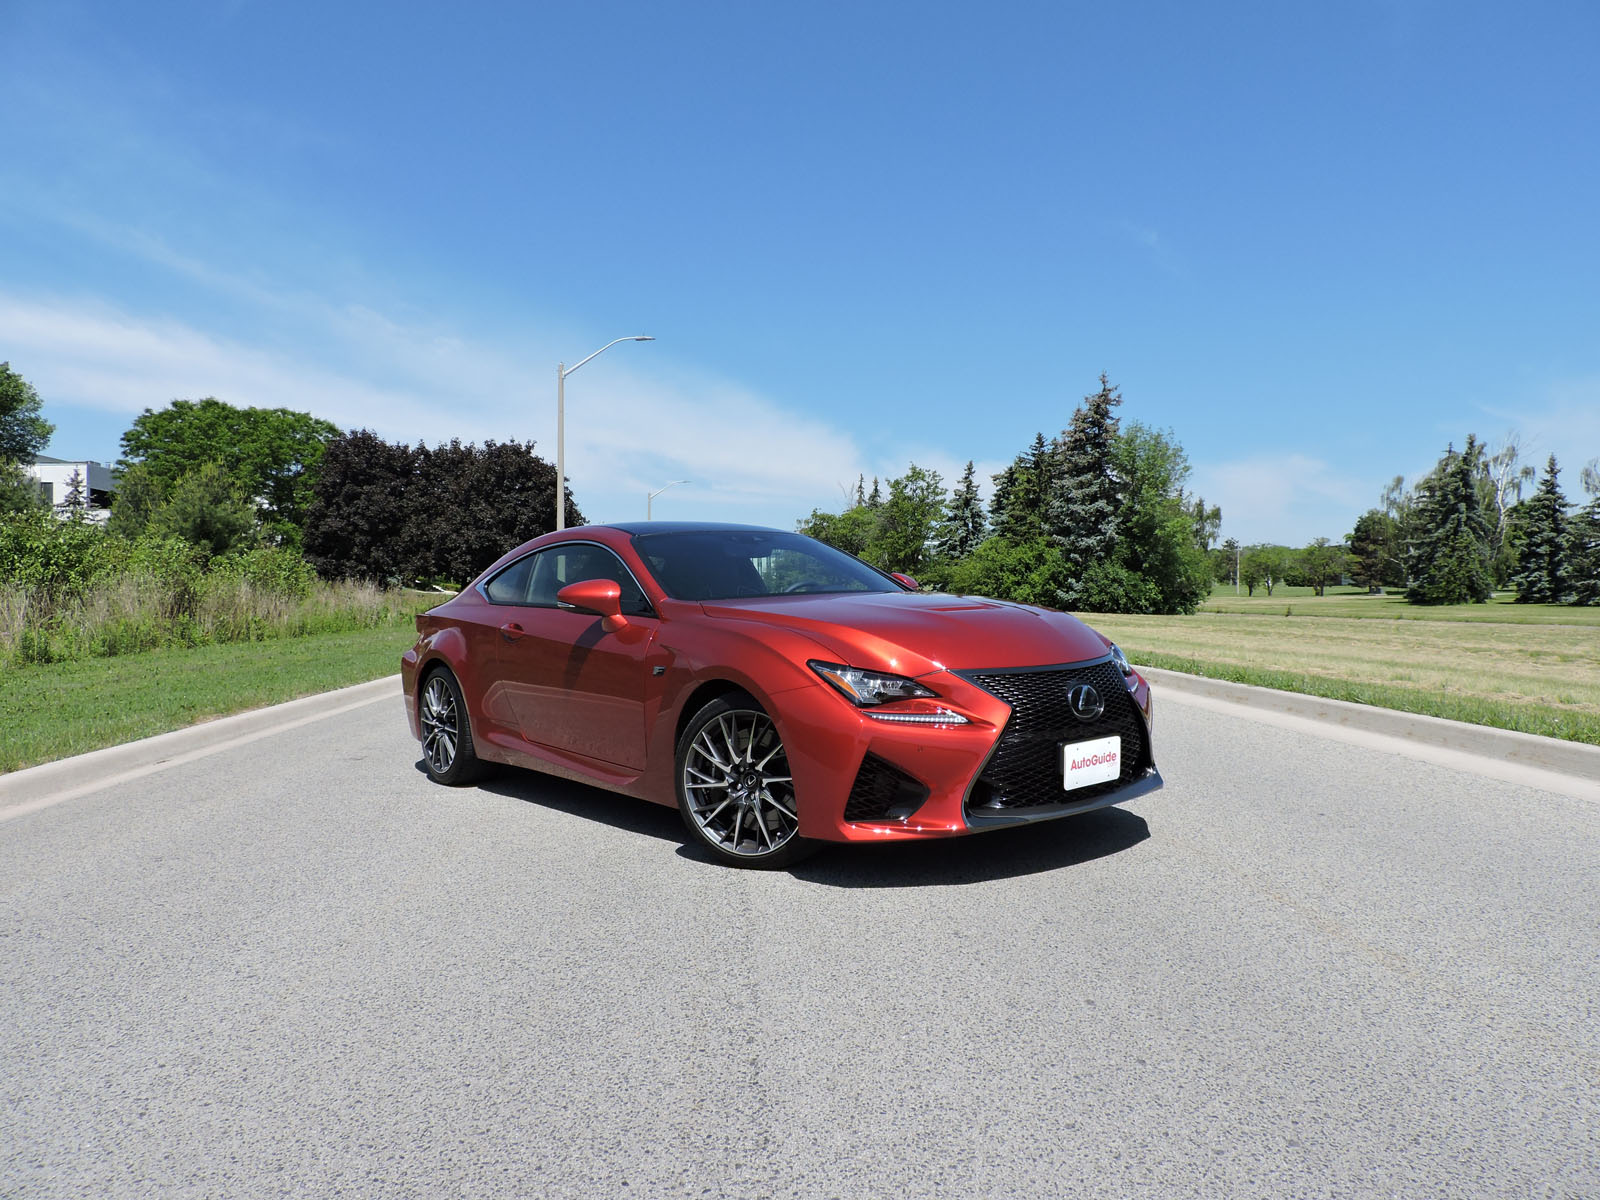 2015 lexus rc f road test news. Black Bedroom Furniture Sets. Home Design Ideas